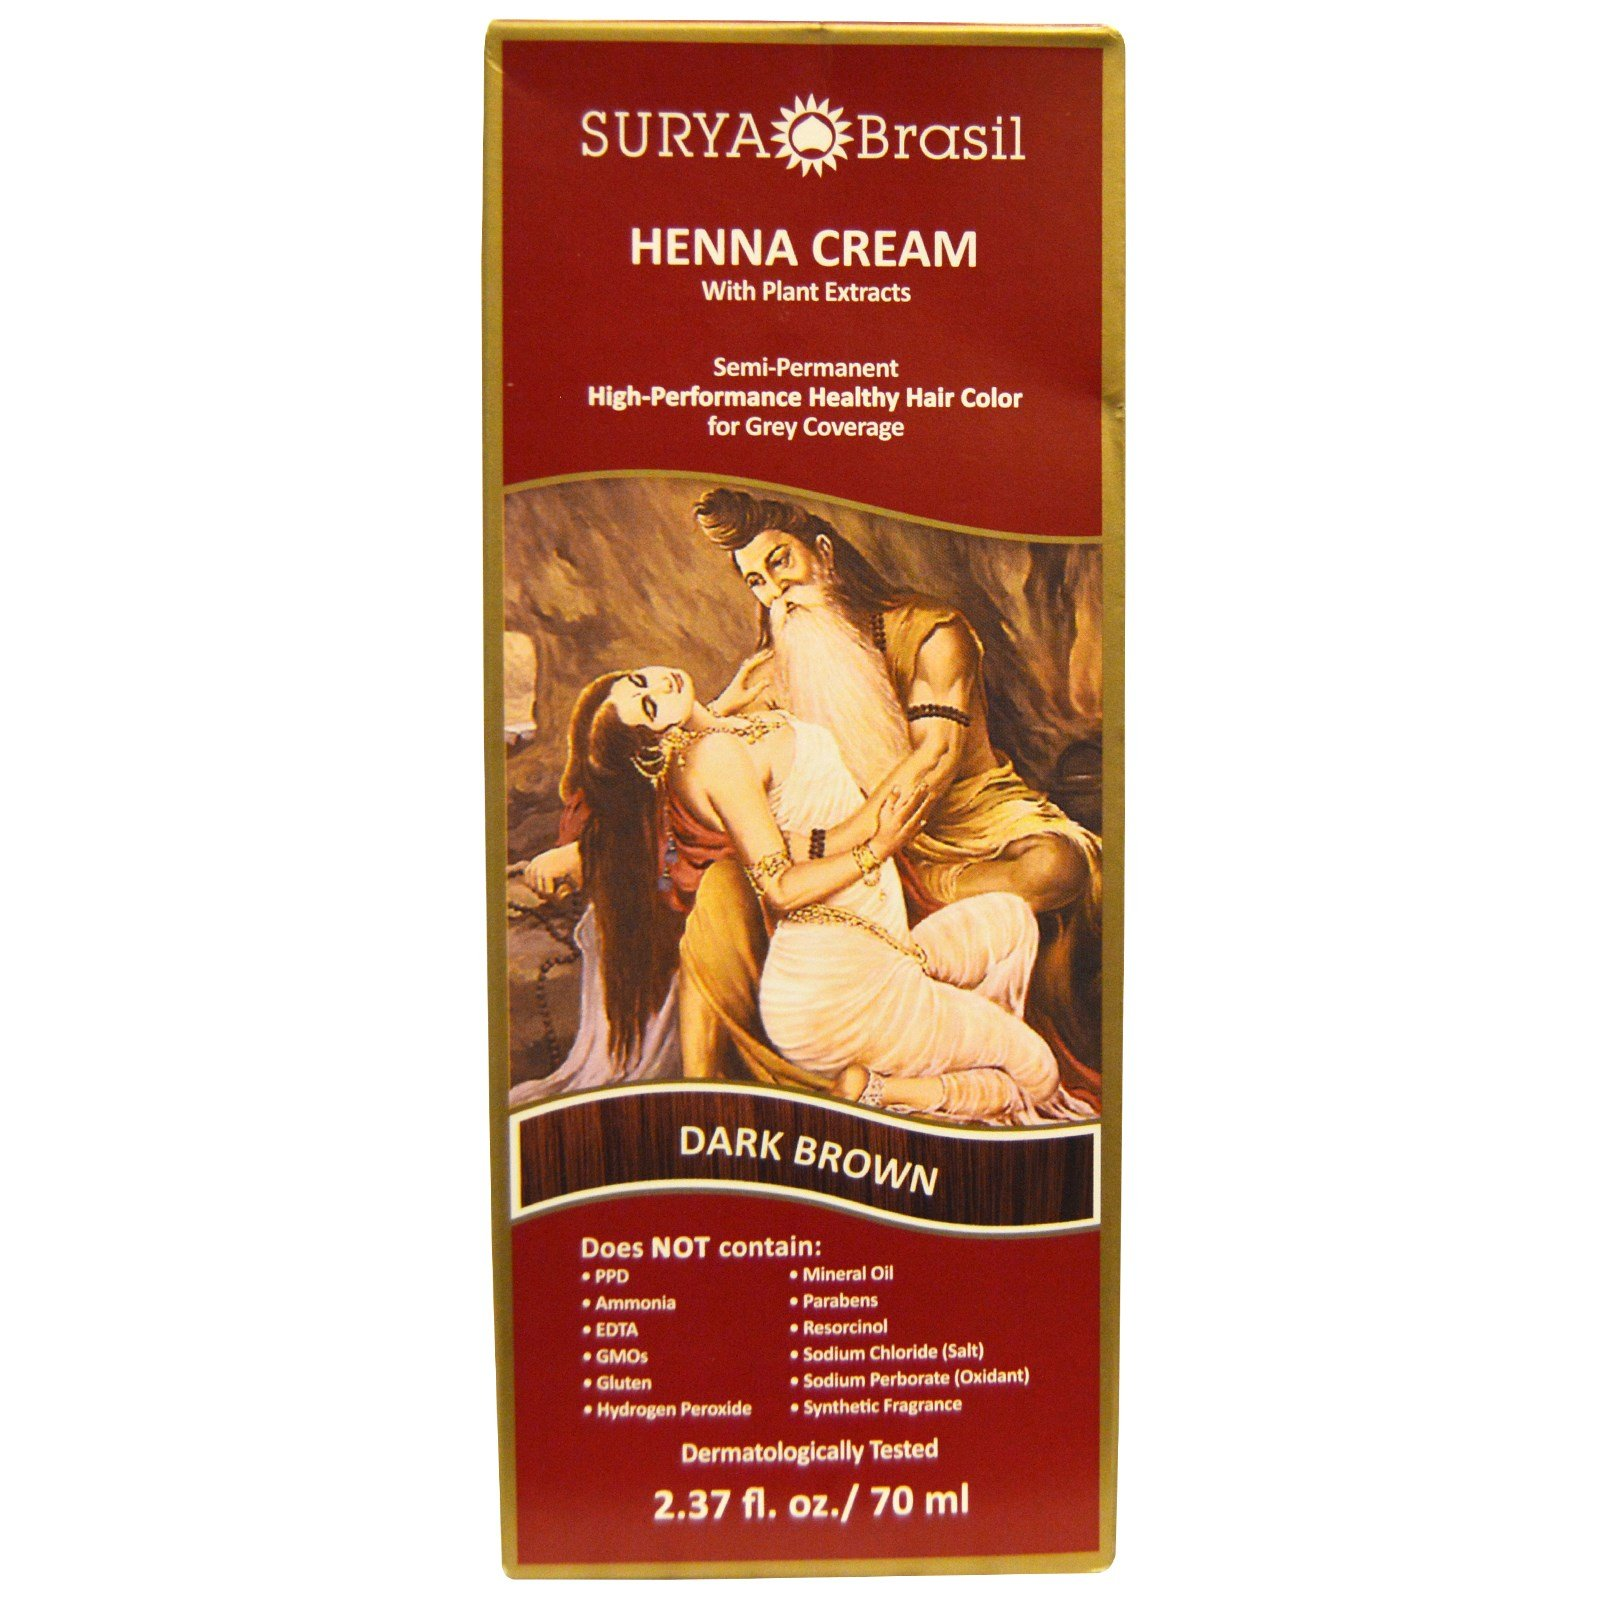 Surya Henna, Henna Cream, High-Performance Healthy Hair Color for Grey Coverage, Dark Brown, 2.37 fl oz (70 ml) - 2pc by